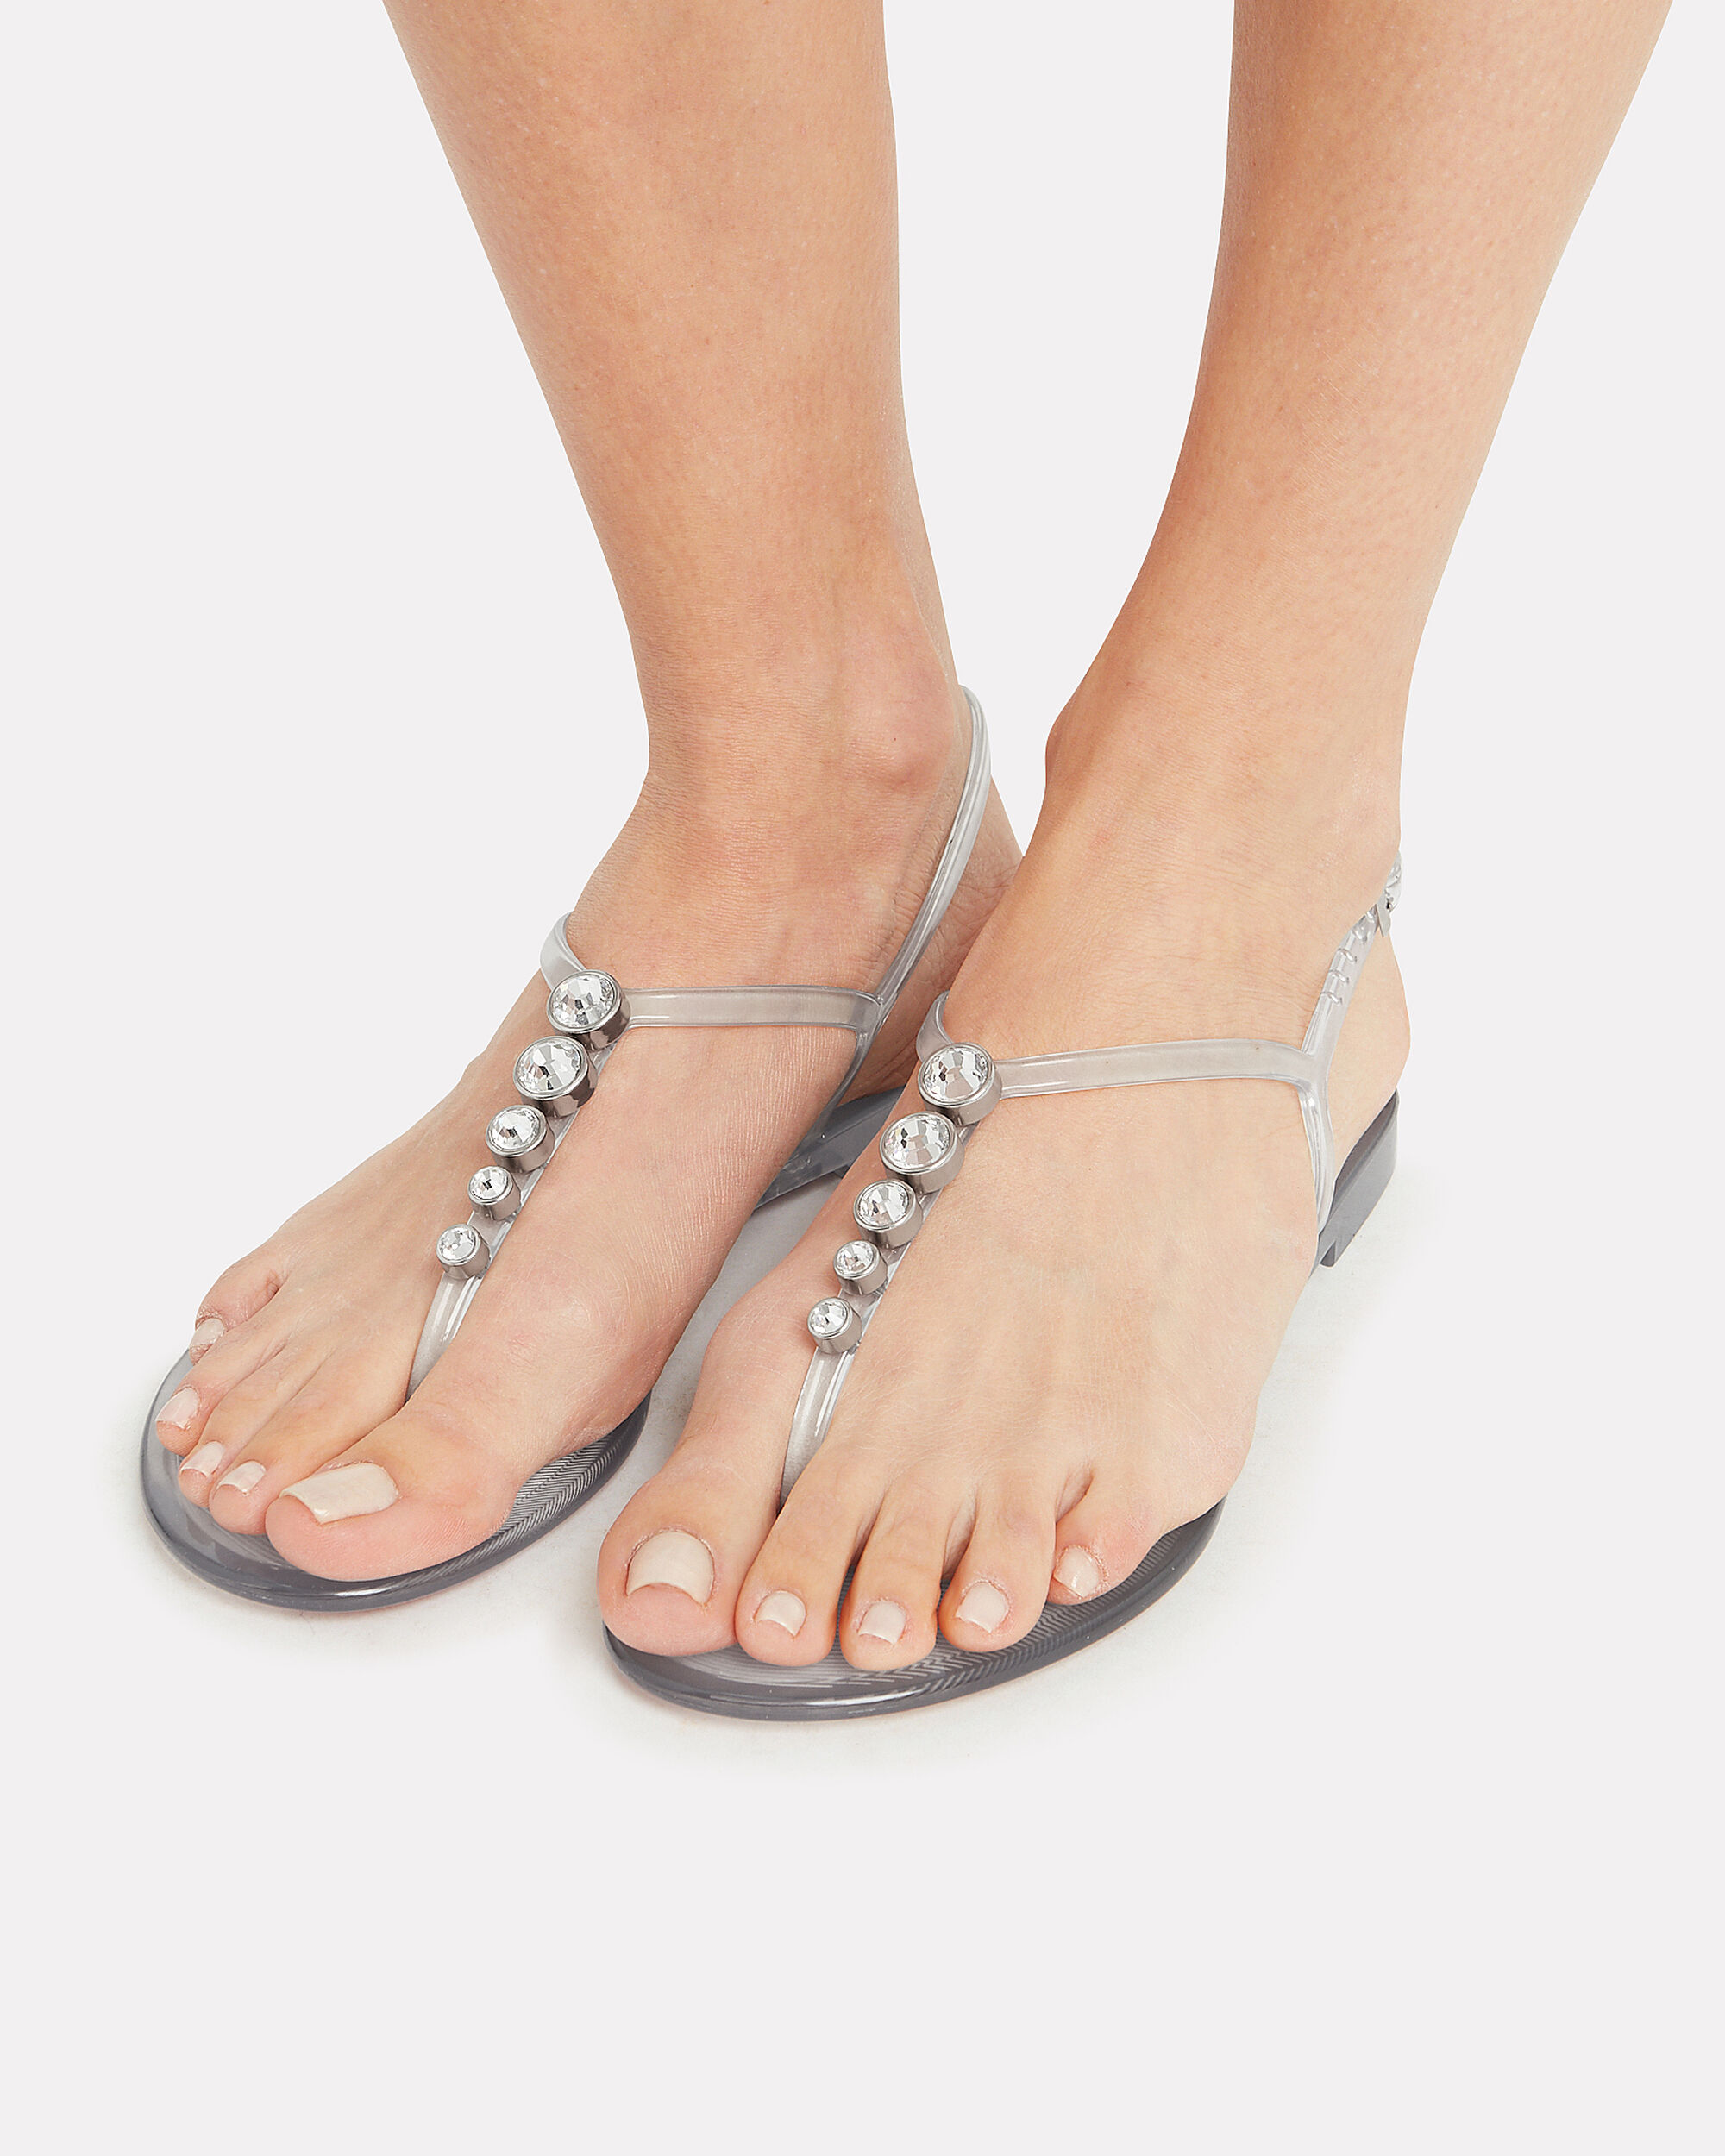 White Stone Embellished Jelly Sandals, CLEAR, hi-res